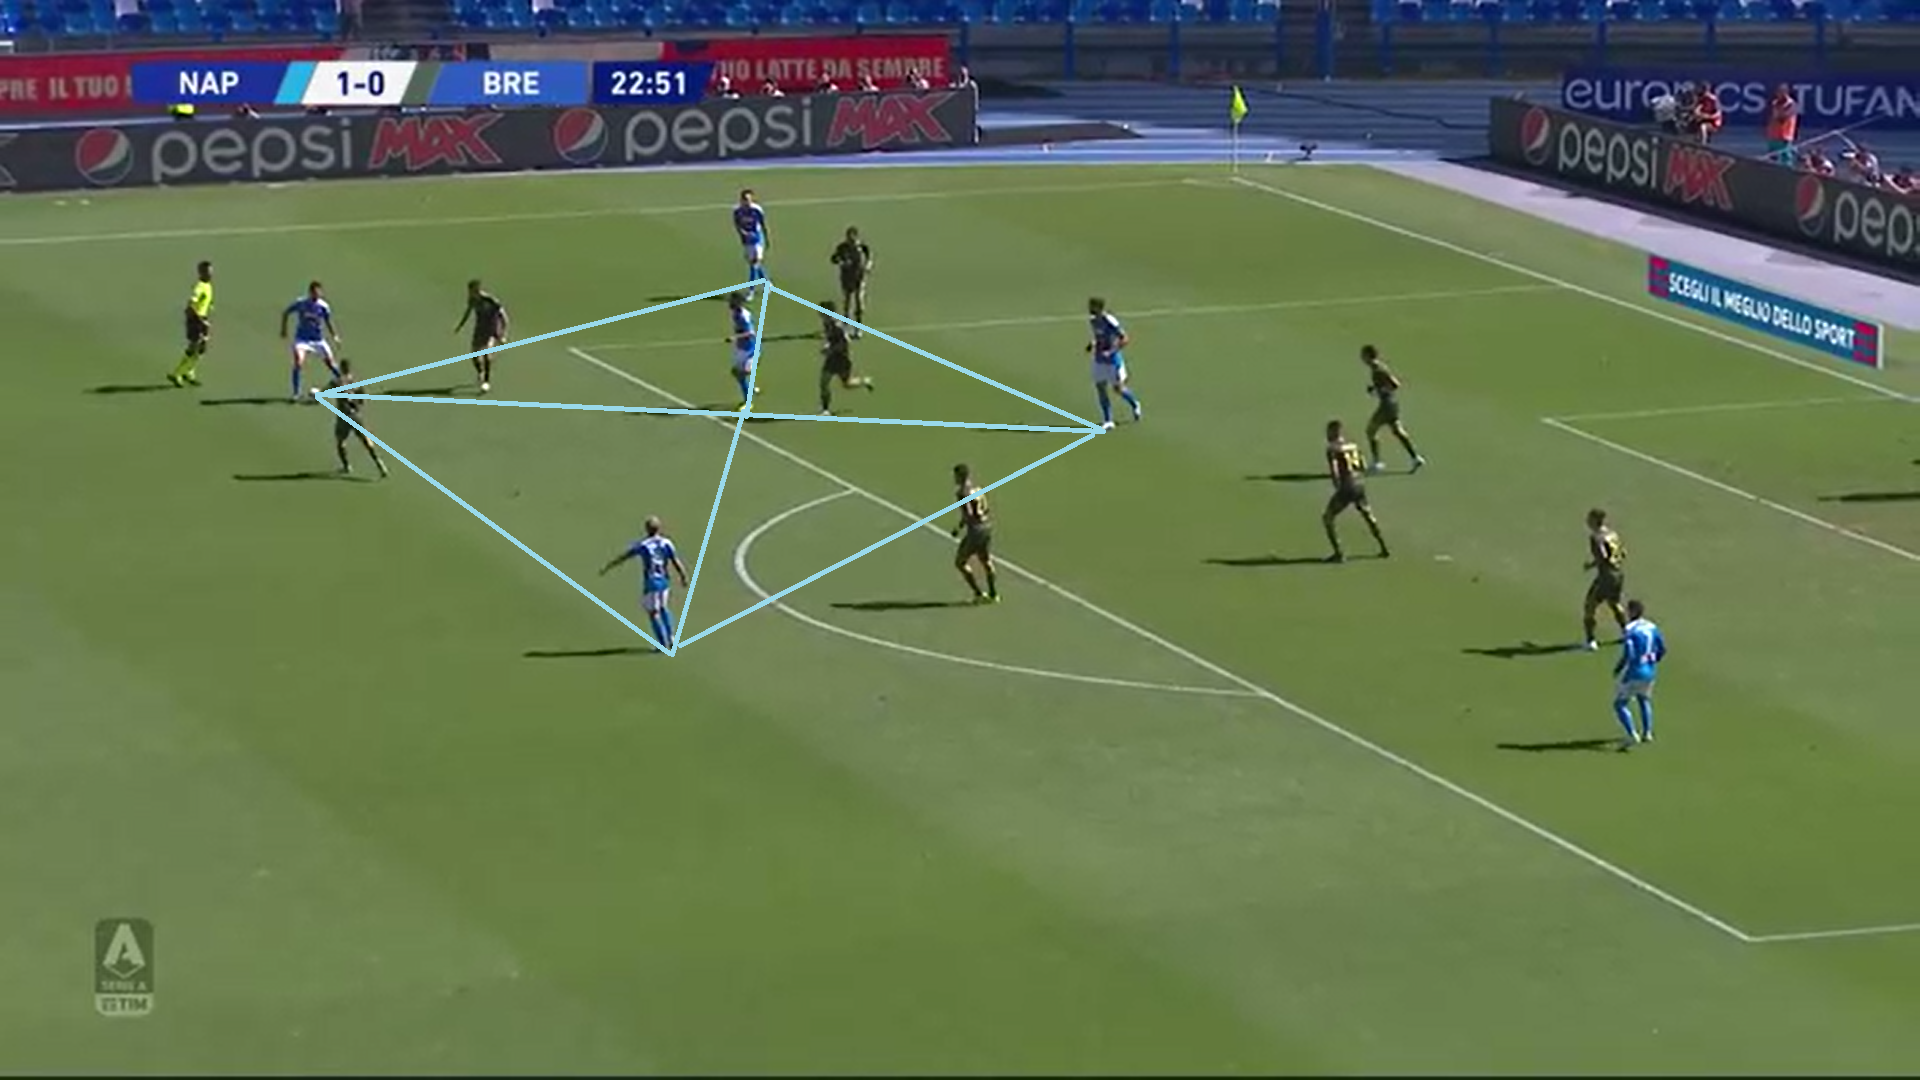 Serie A 2019/20: Napoli vs Brescia - tactical analysis tactics